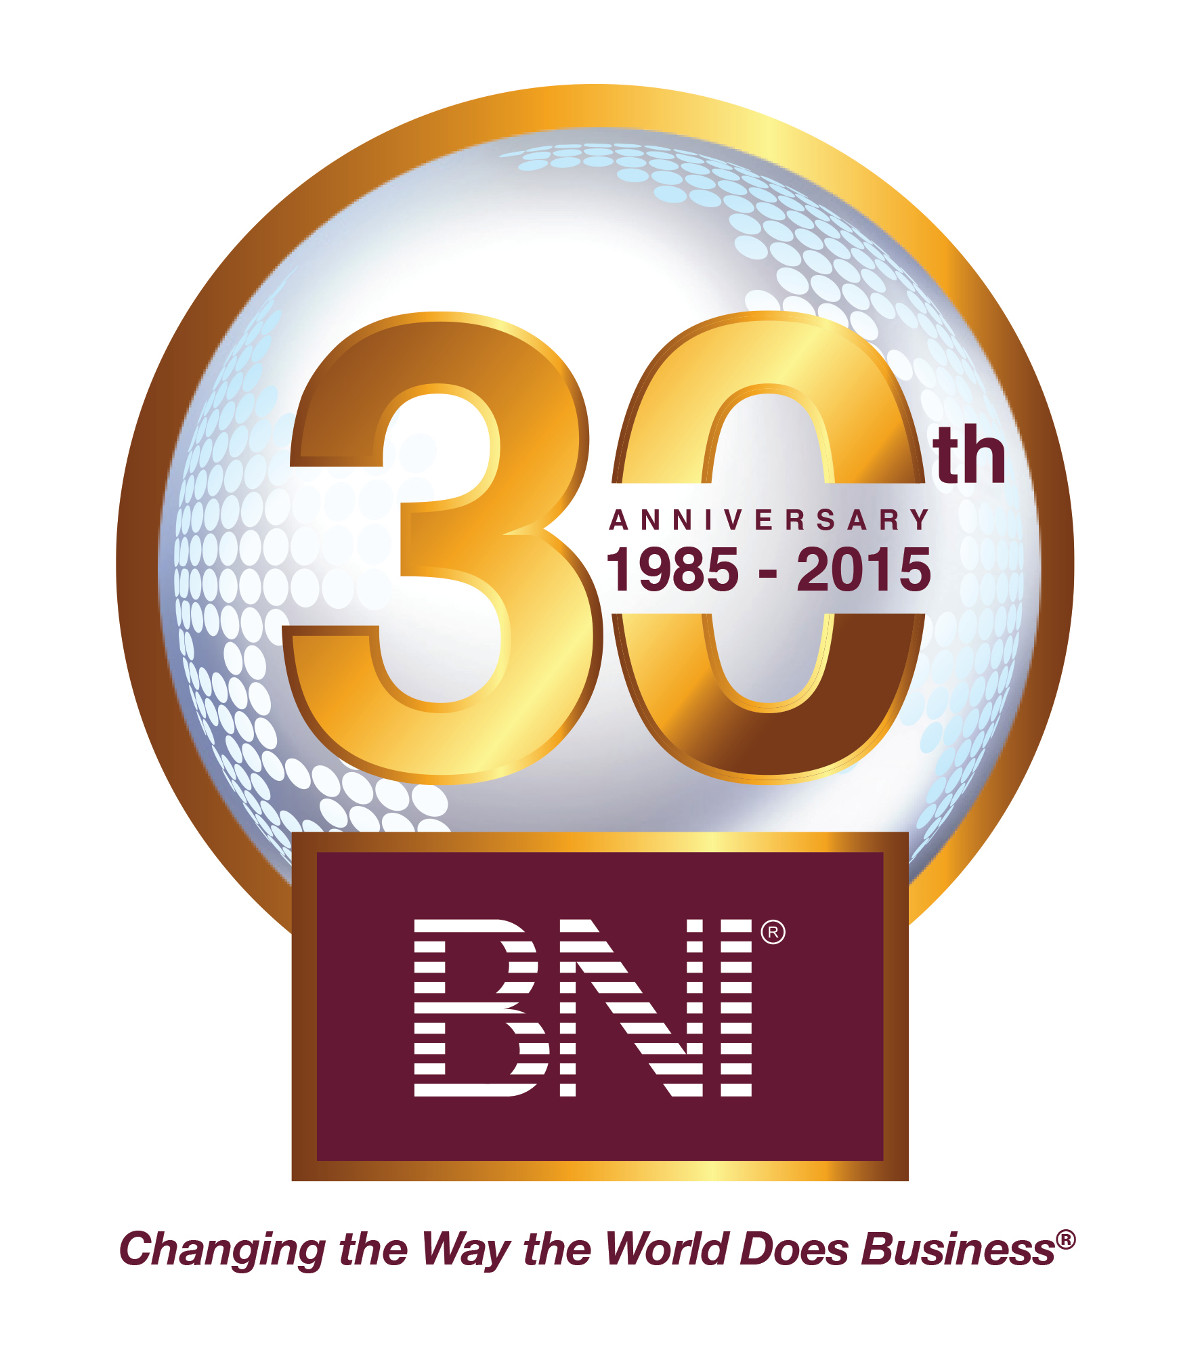 30 Jahre BNI - Changing the Way the World Does Business